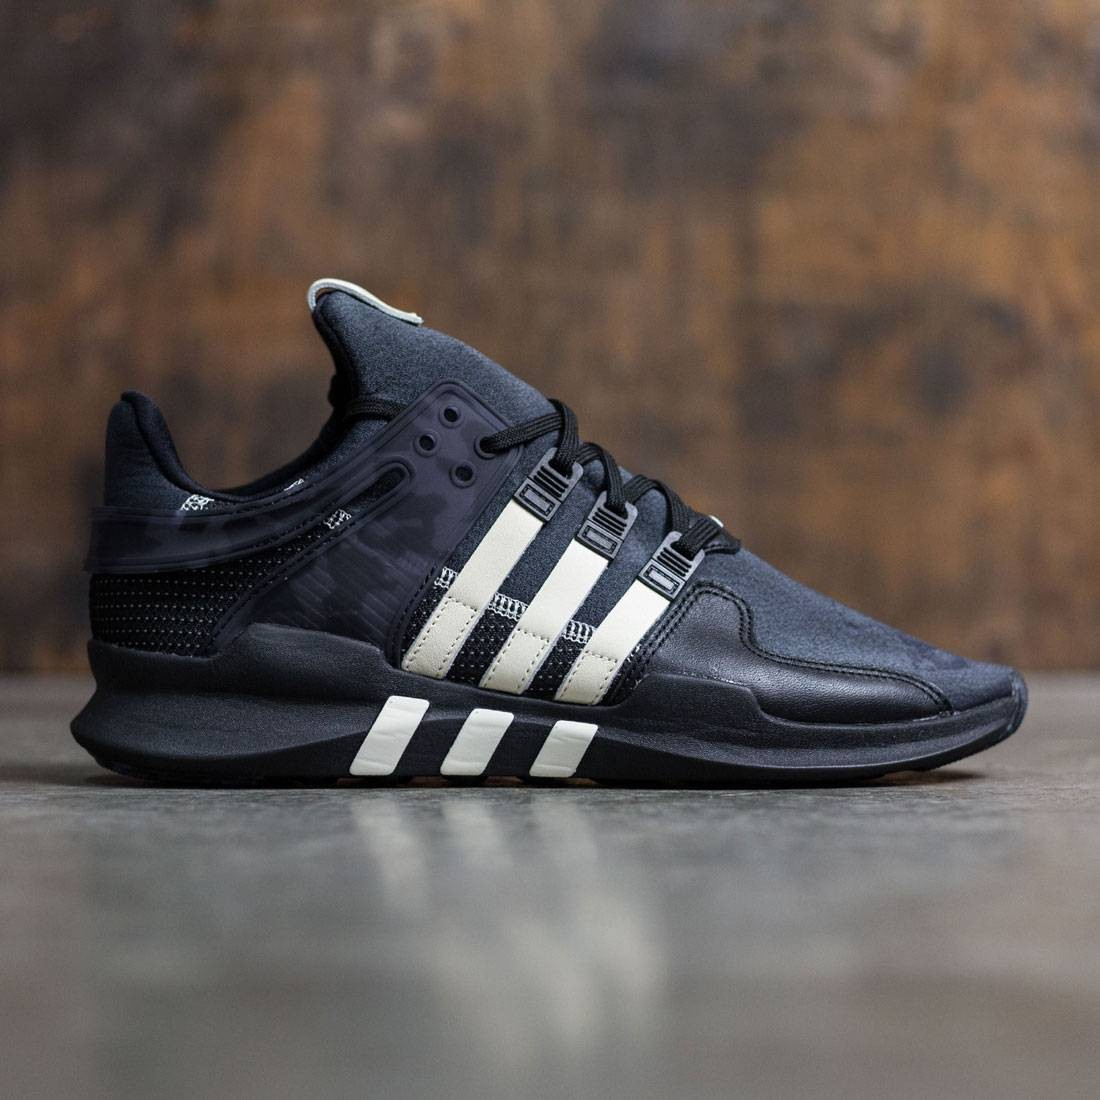 outlet store c0906 4c04c Adidas Consortium x Undefeated Men EQT Support ADV (black / footwear white  / core black)